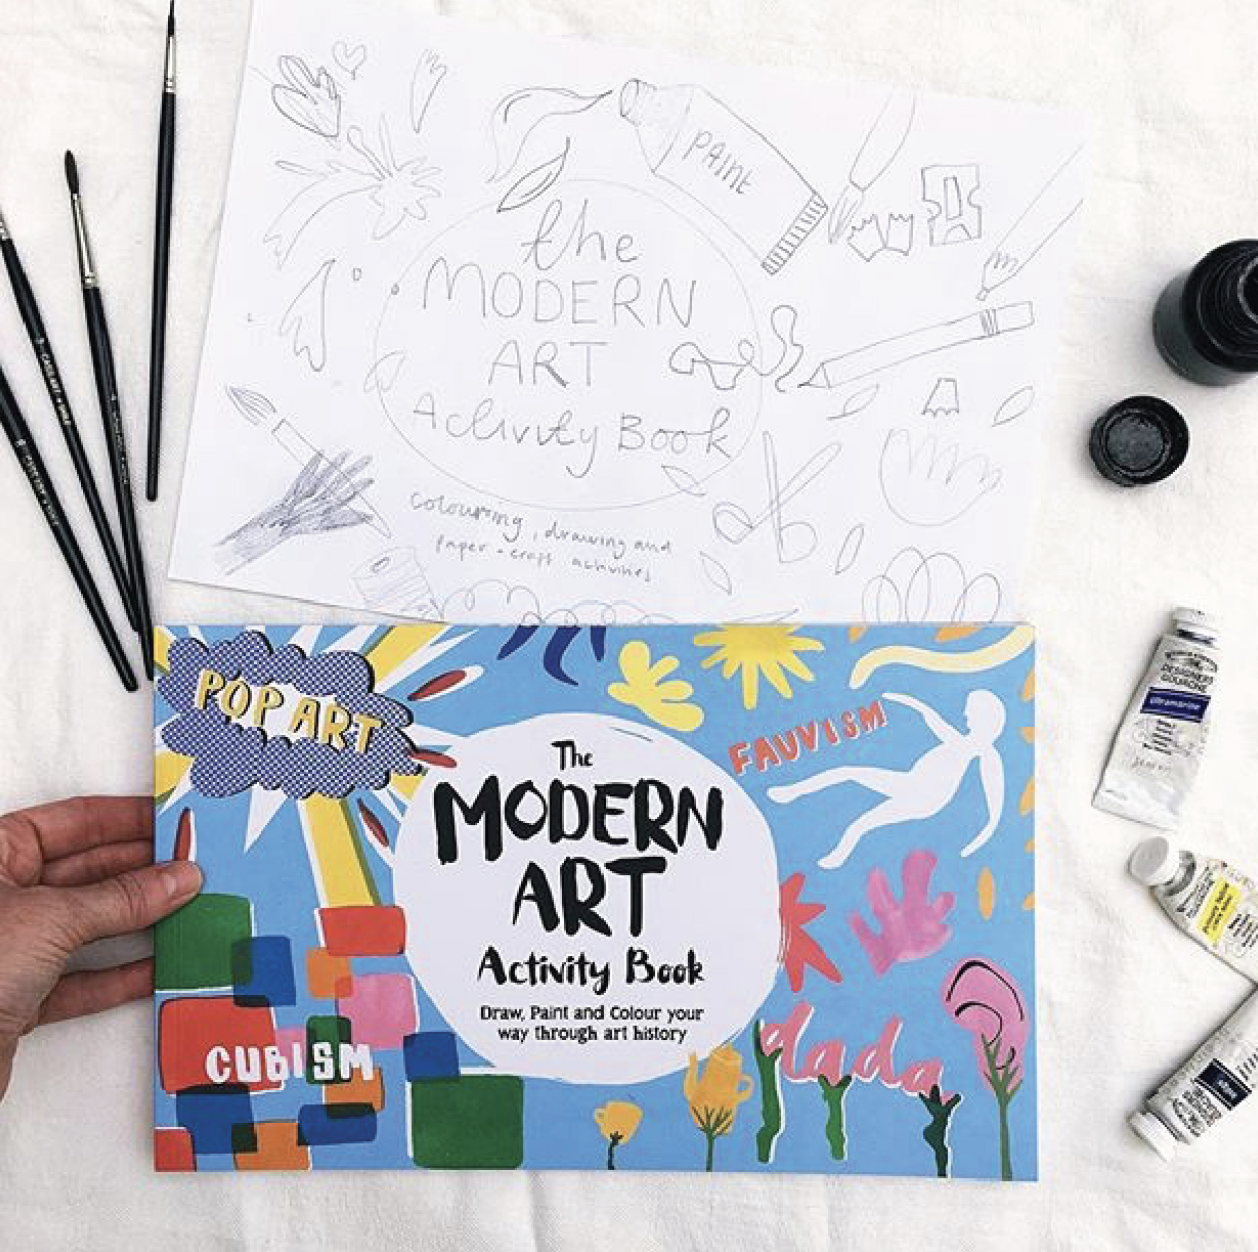 The Modern Art Activity Book (2016)